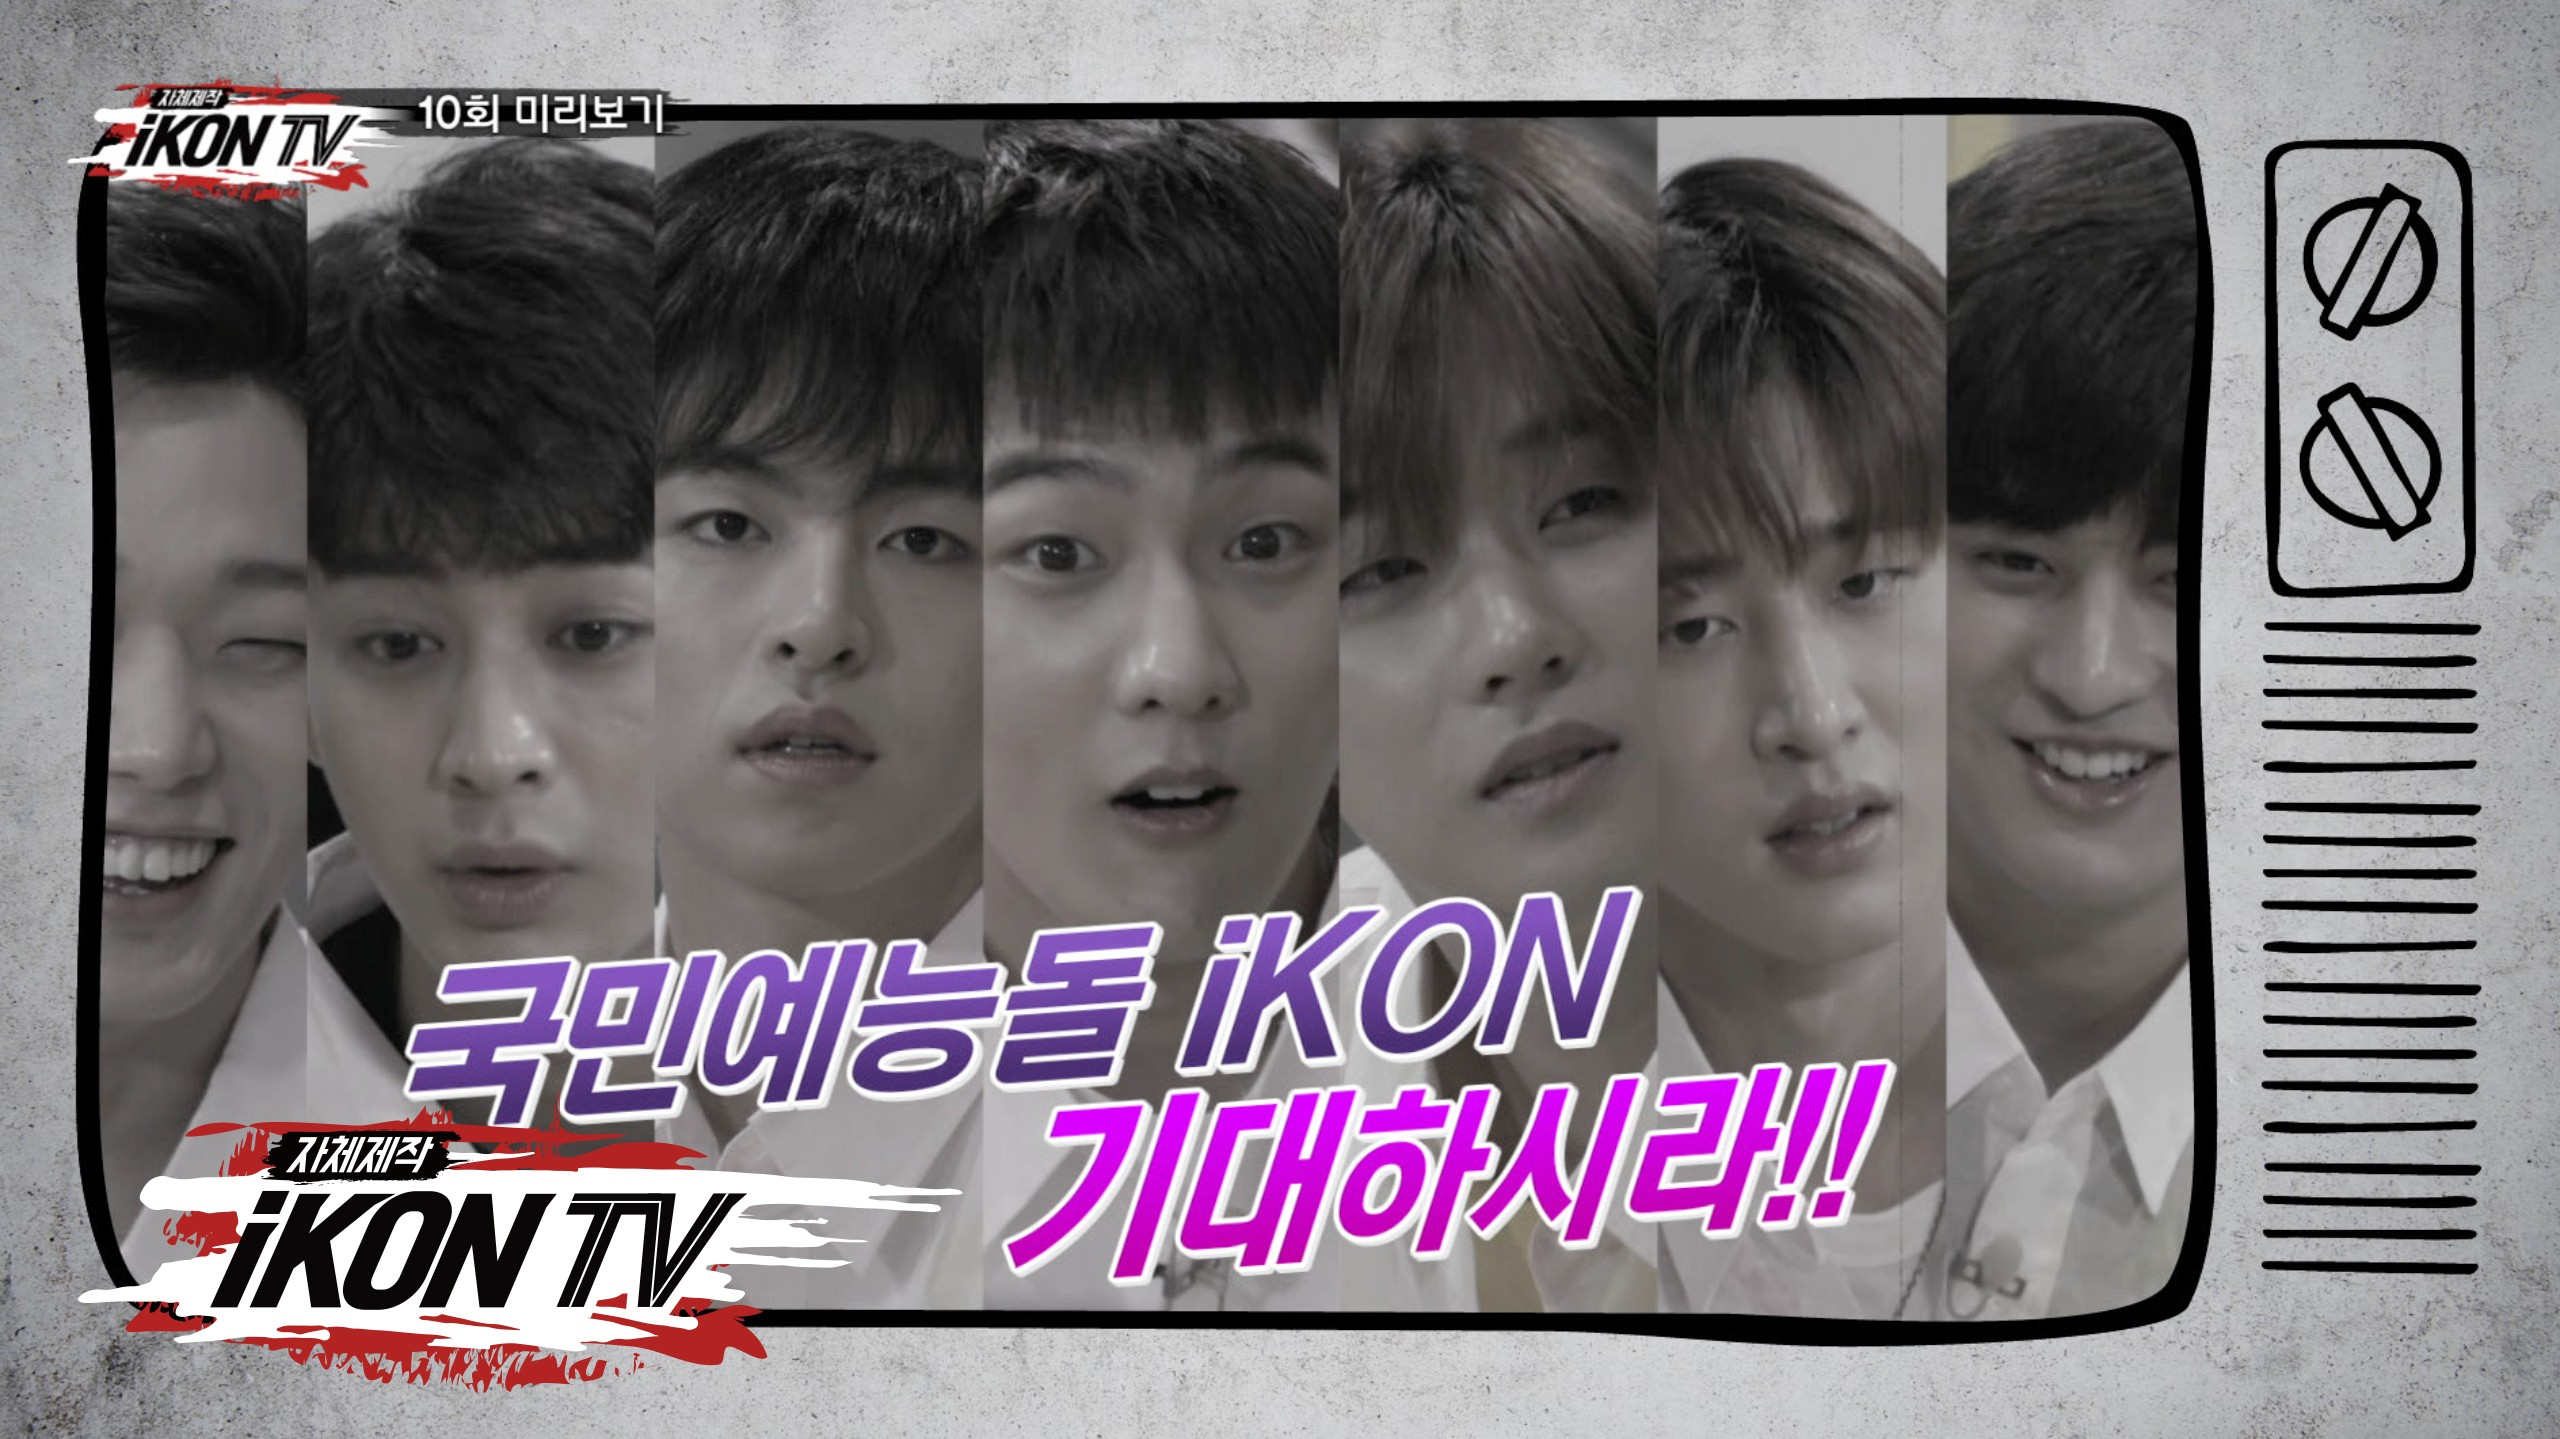 iKON - '자체제작 iKON TV' EP.10 PREVIEW